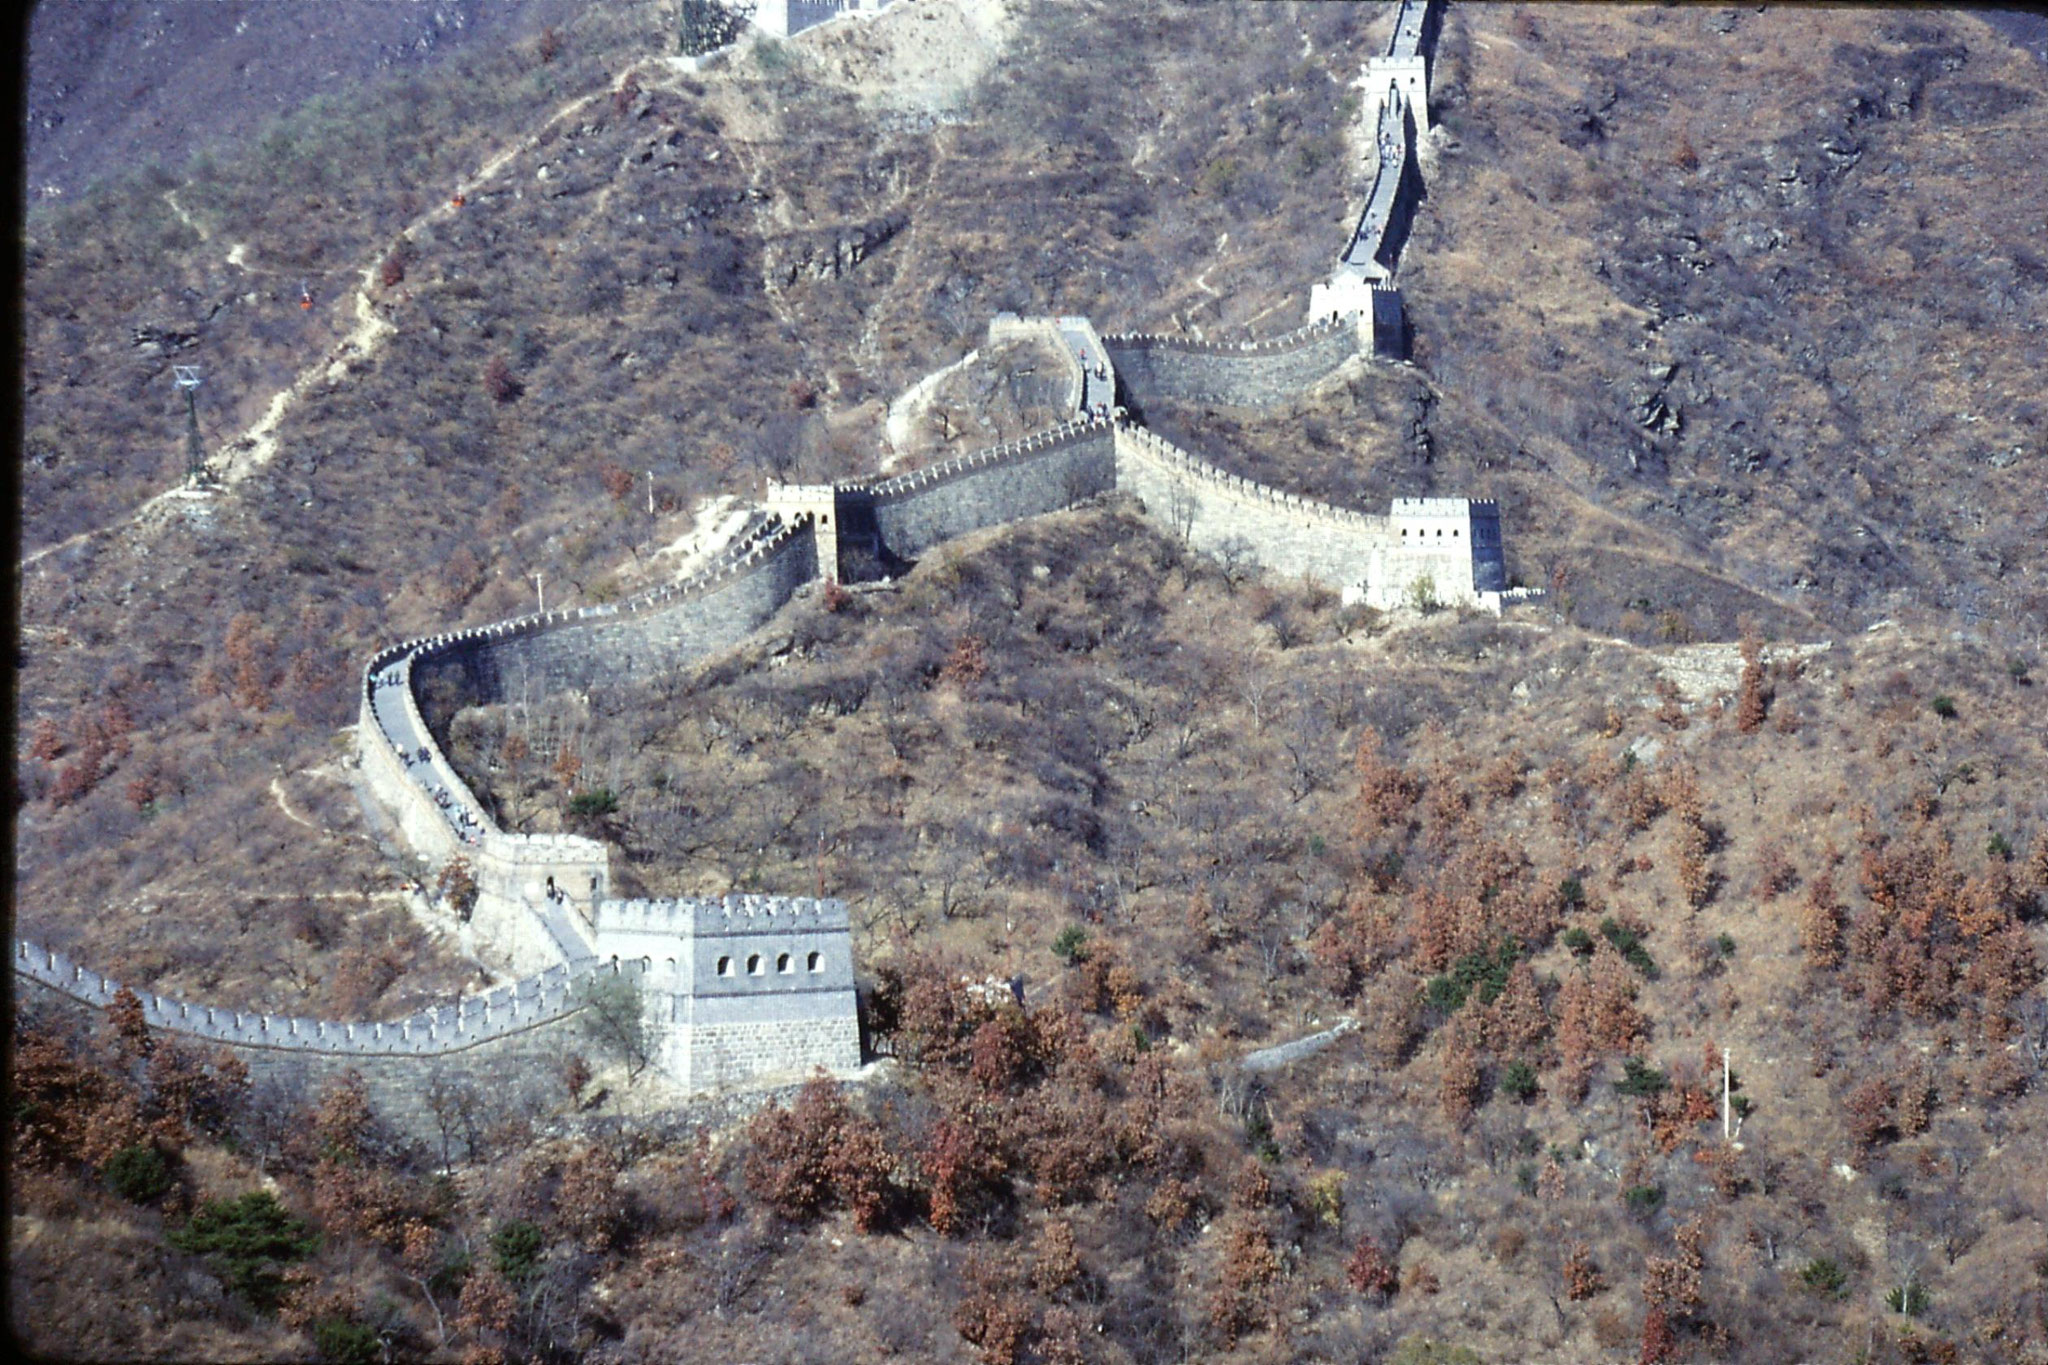 13/11/1988: 21: Great Wall at Mutianyu